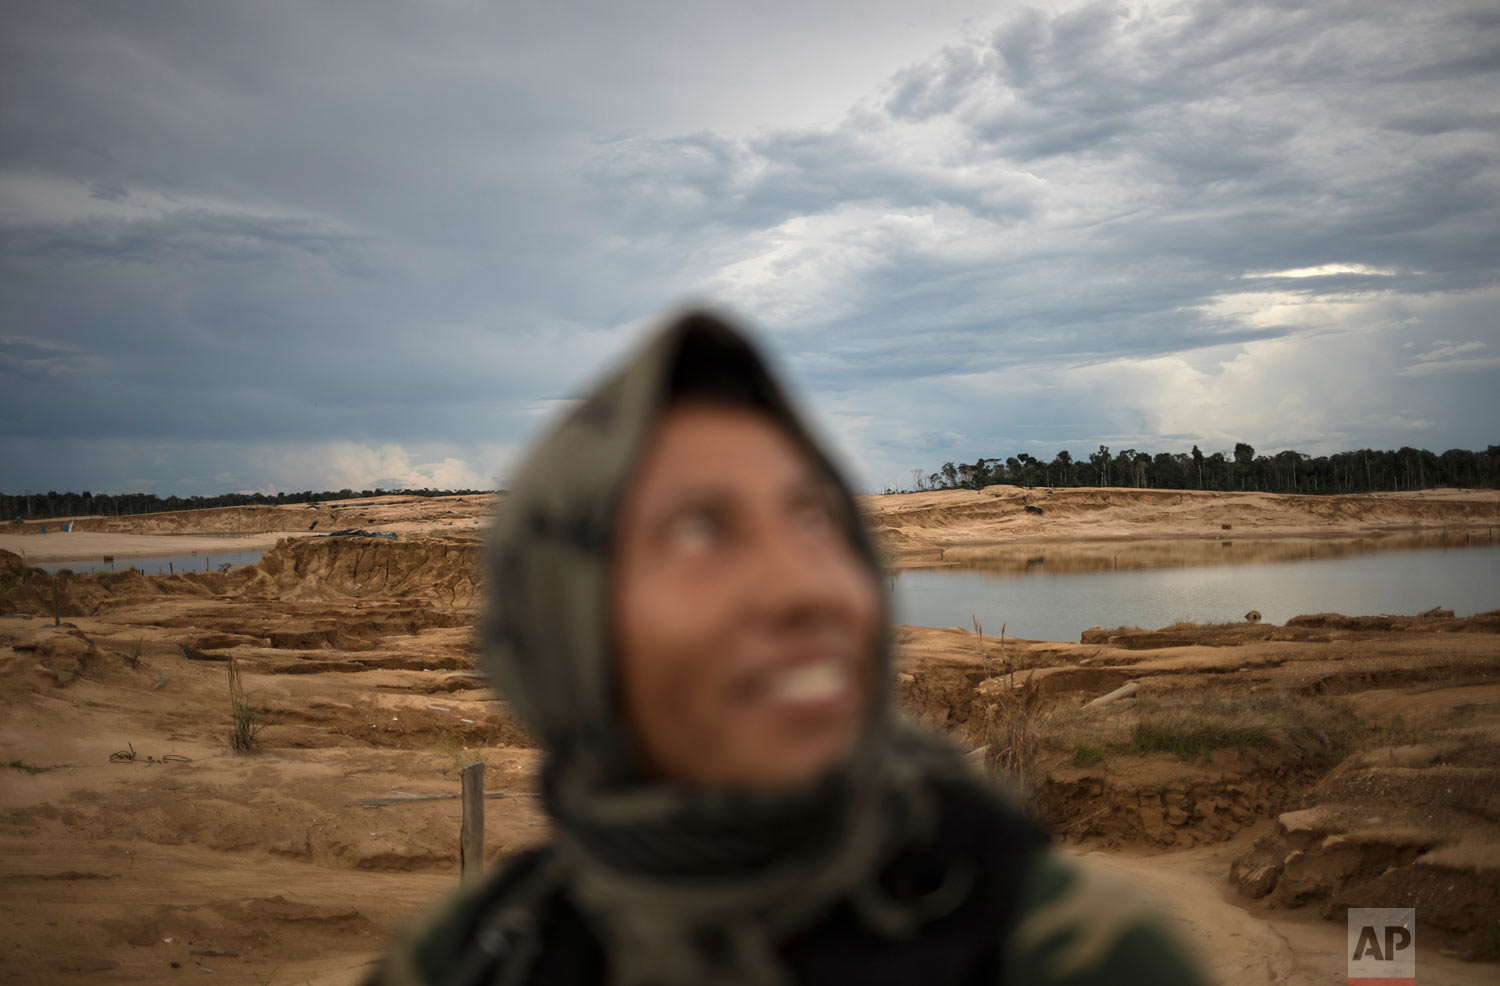 "A police officer smiles while riding in a pick-up truck, April 3, 2019, during a patrol in Peru's Tambopata province. The area known by miners as ""La Pampa,"" which surrounds a national park and doesn't appear on state maps, has yielded roughly 25 tons of illegally mined gold a year, much more than the legally produced amount in the same area, according to the Peruvian government. (AP Photo/Rodrigo Abd)"